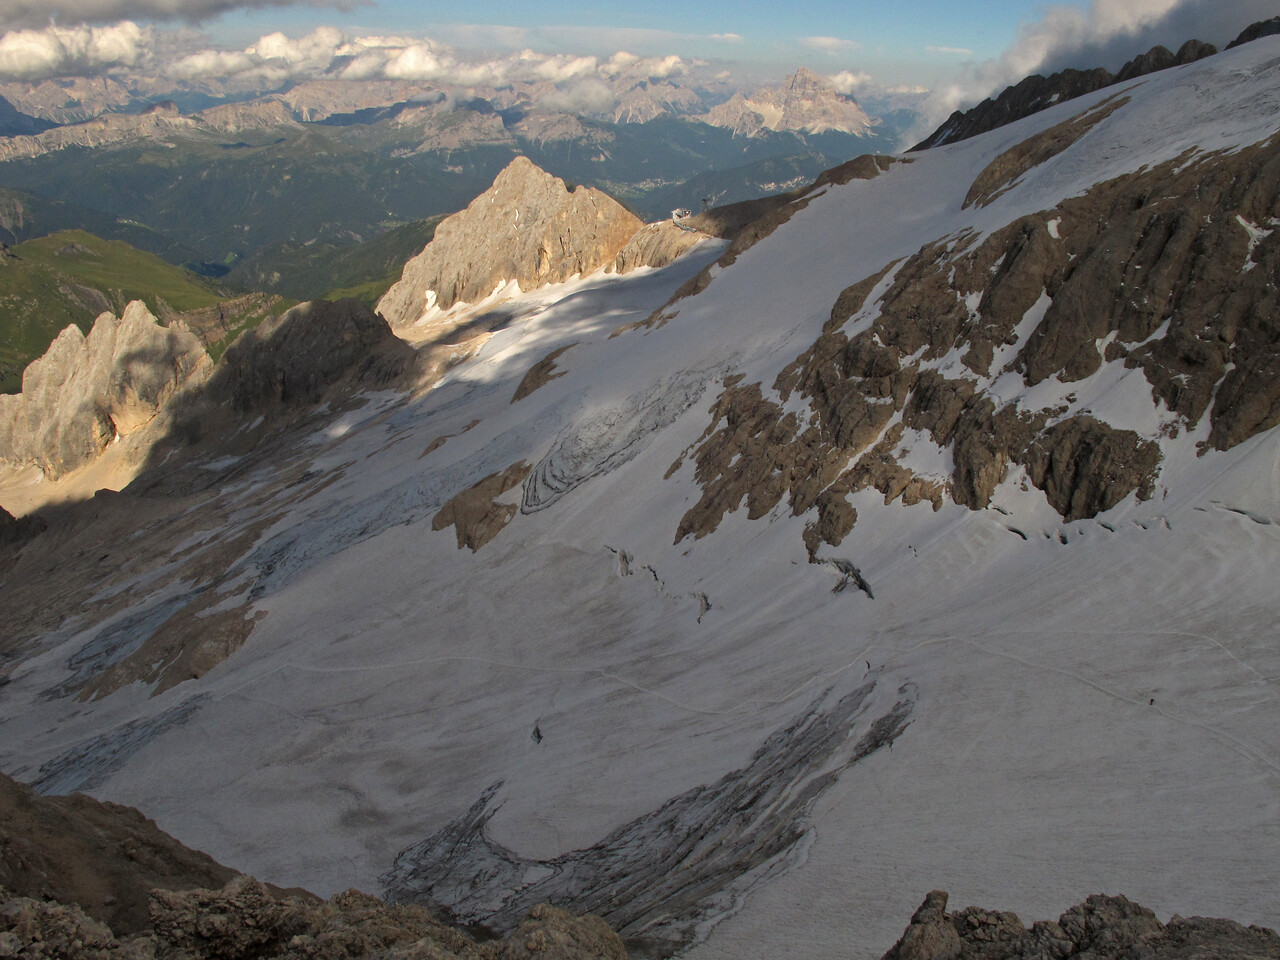 Descent from Marmolada